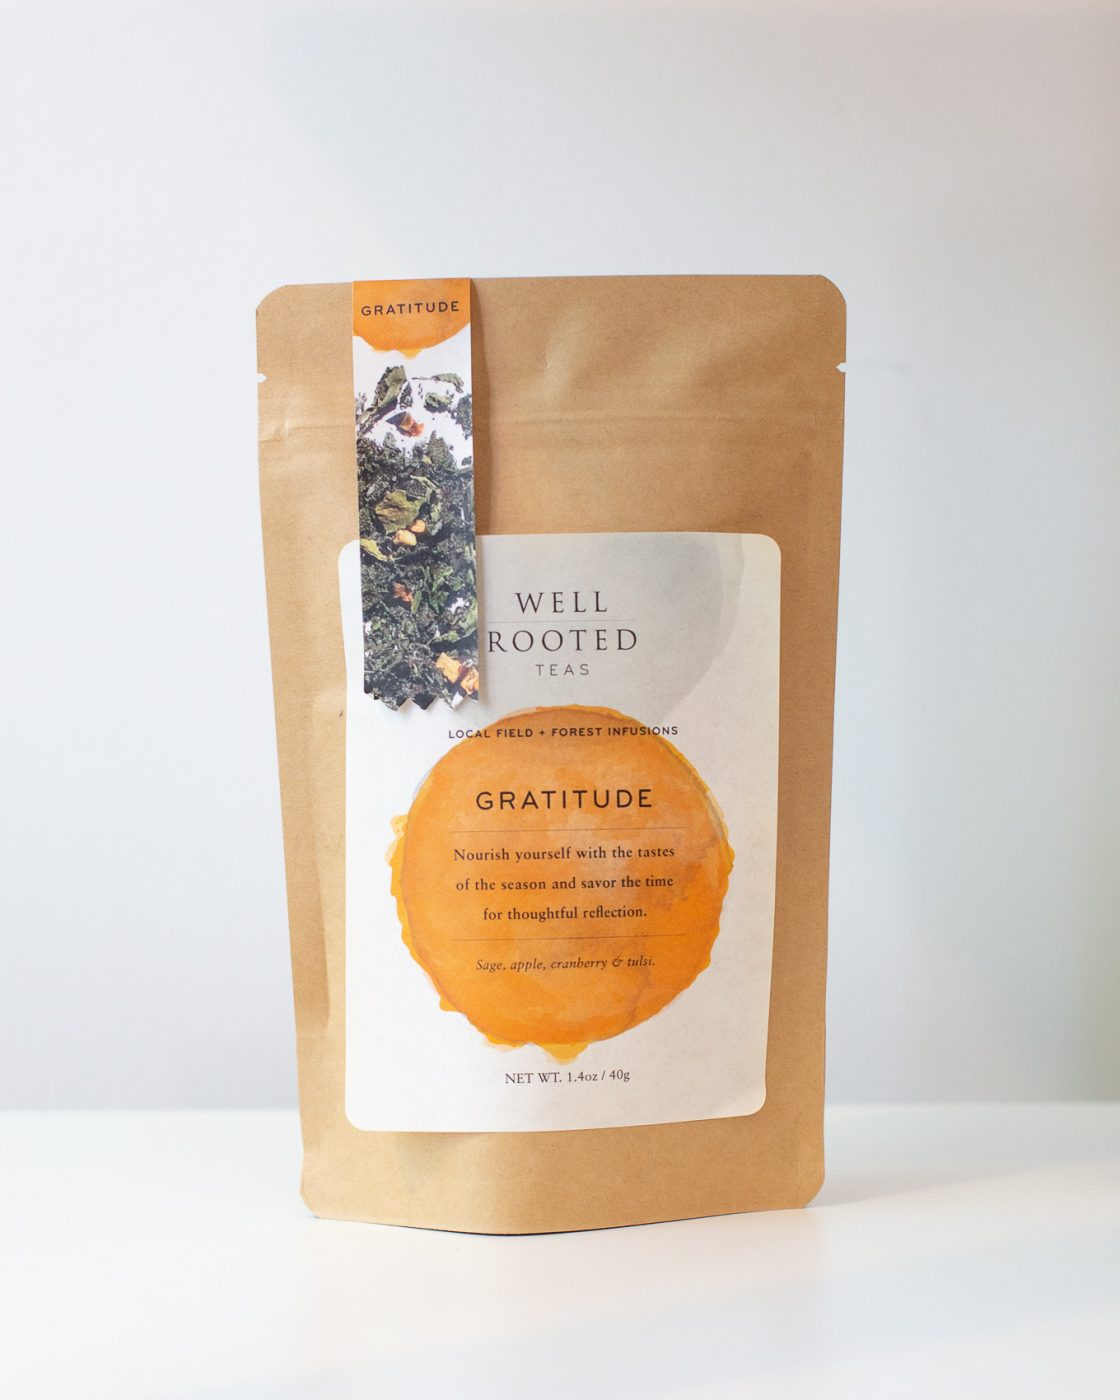 Well Rooted local Minneapolis company Gratitude tea